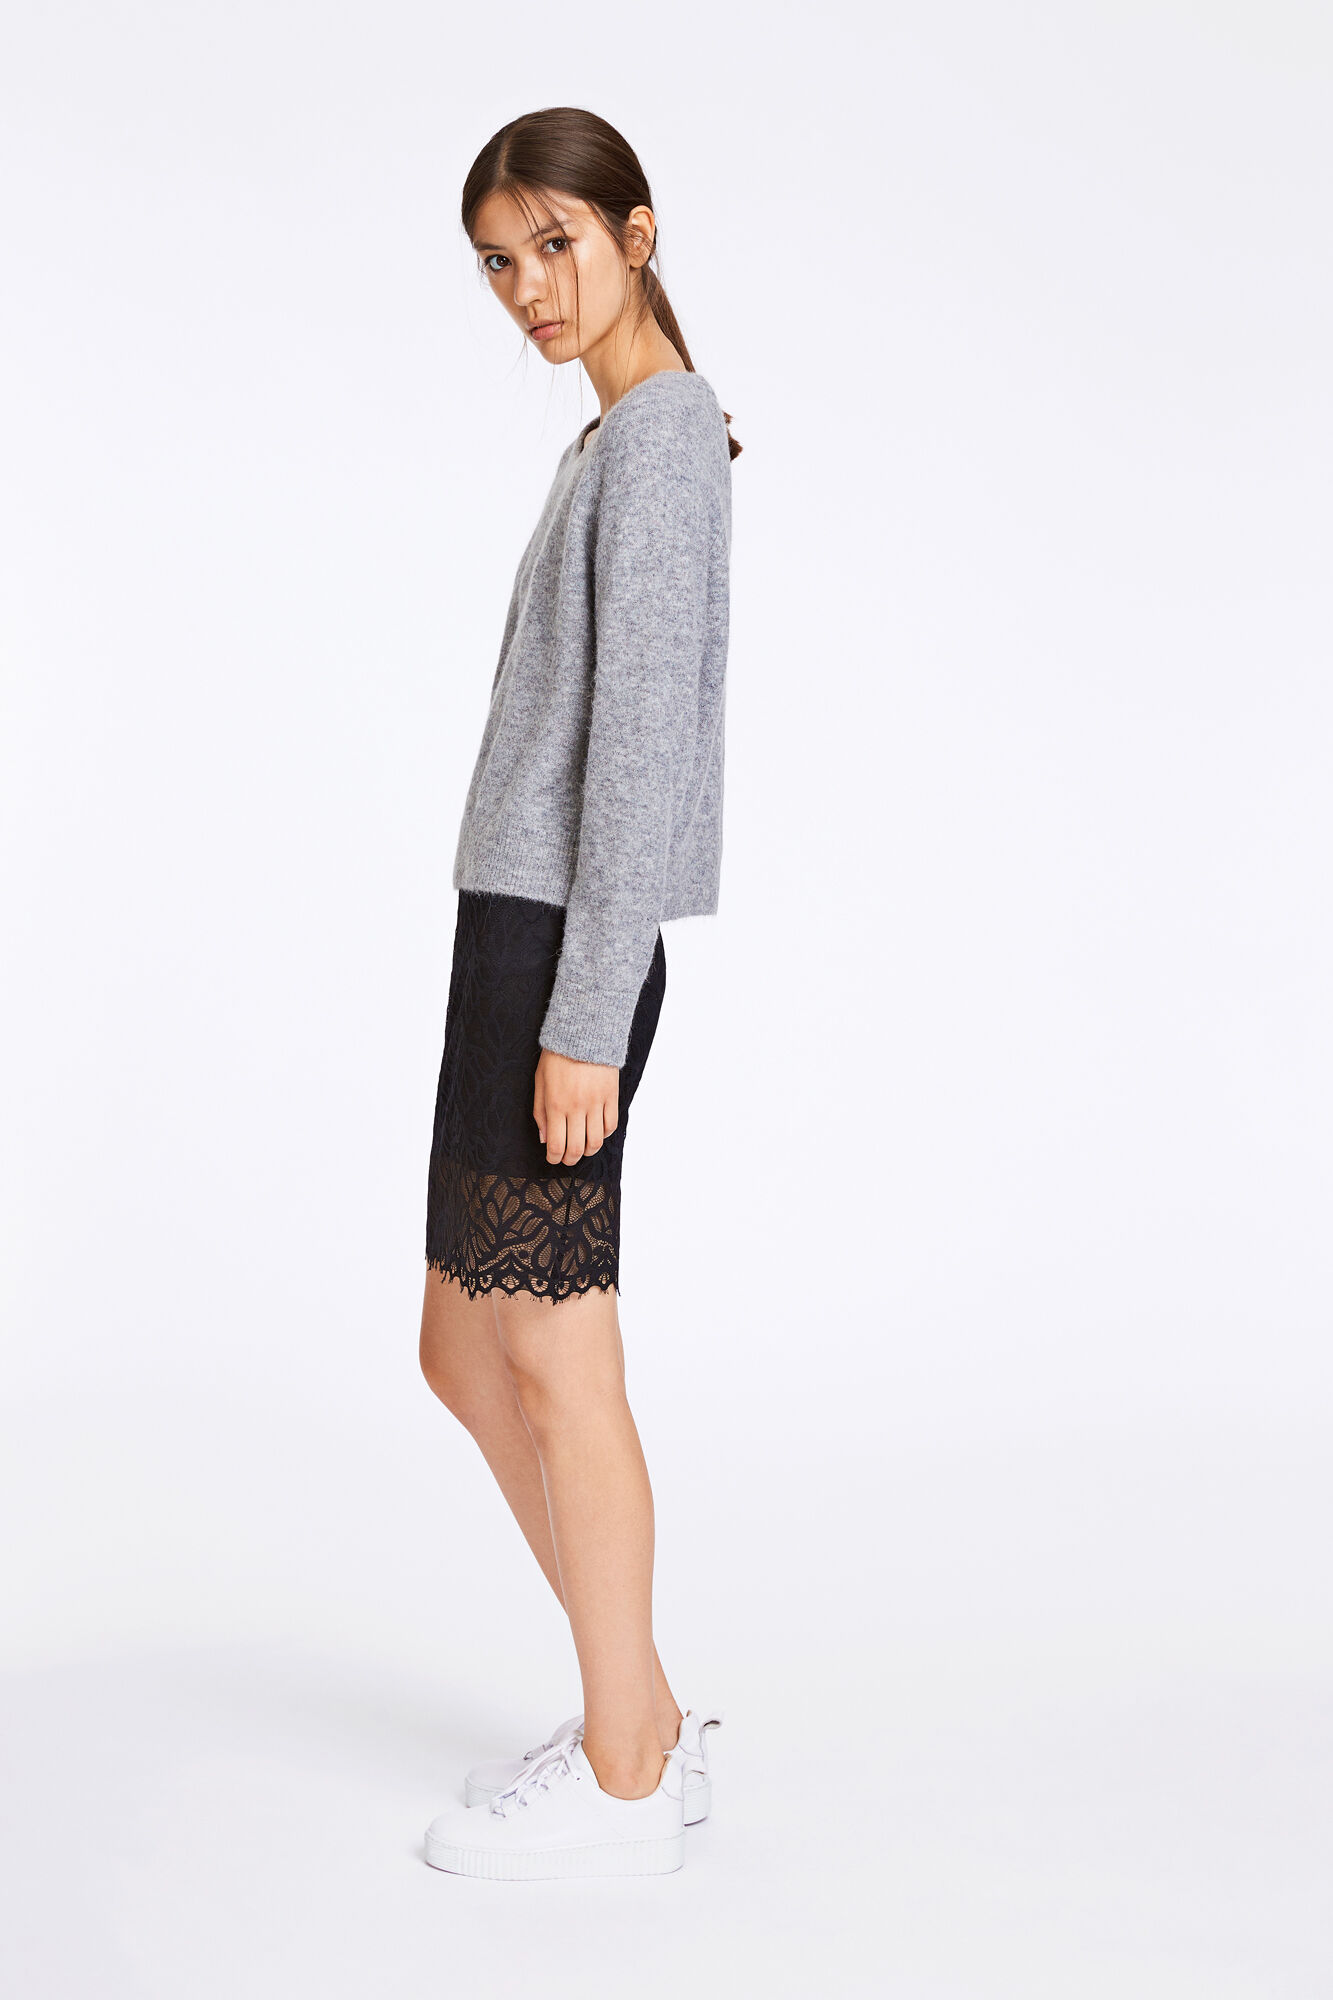 Nor o-n short 7355, GREY MEL.